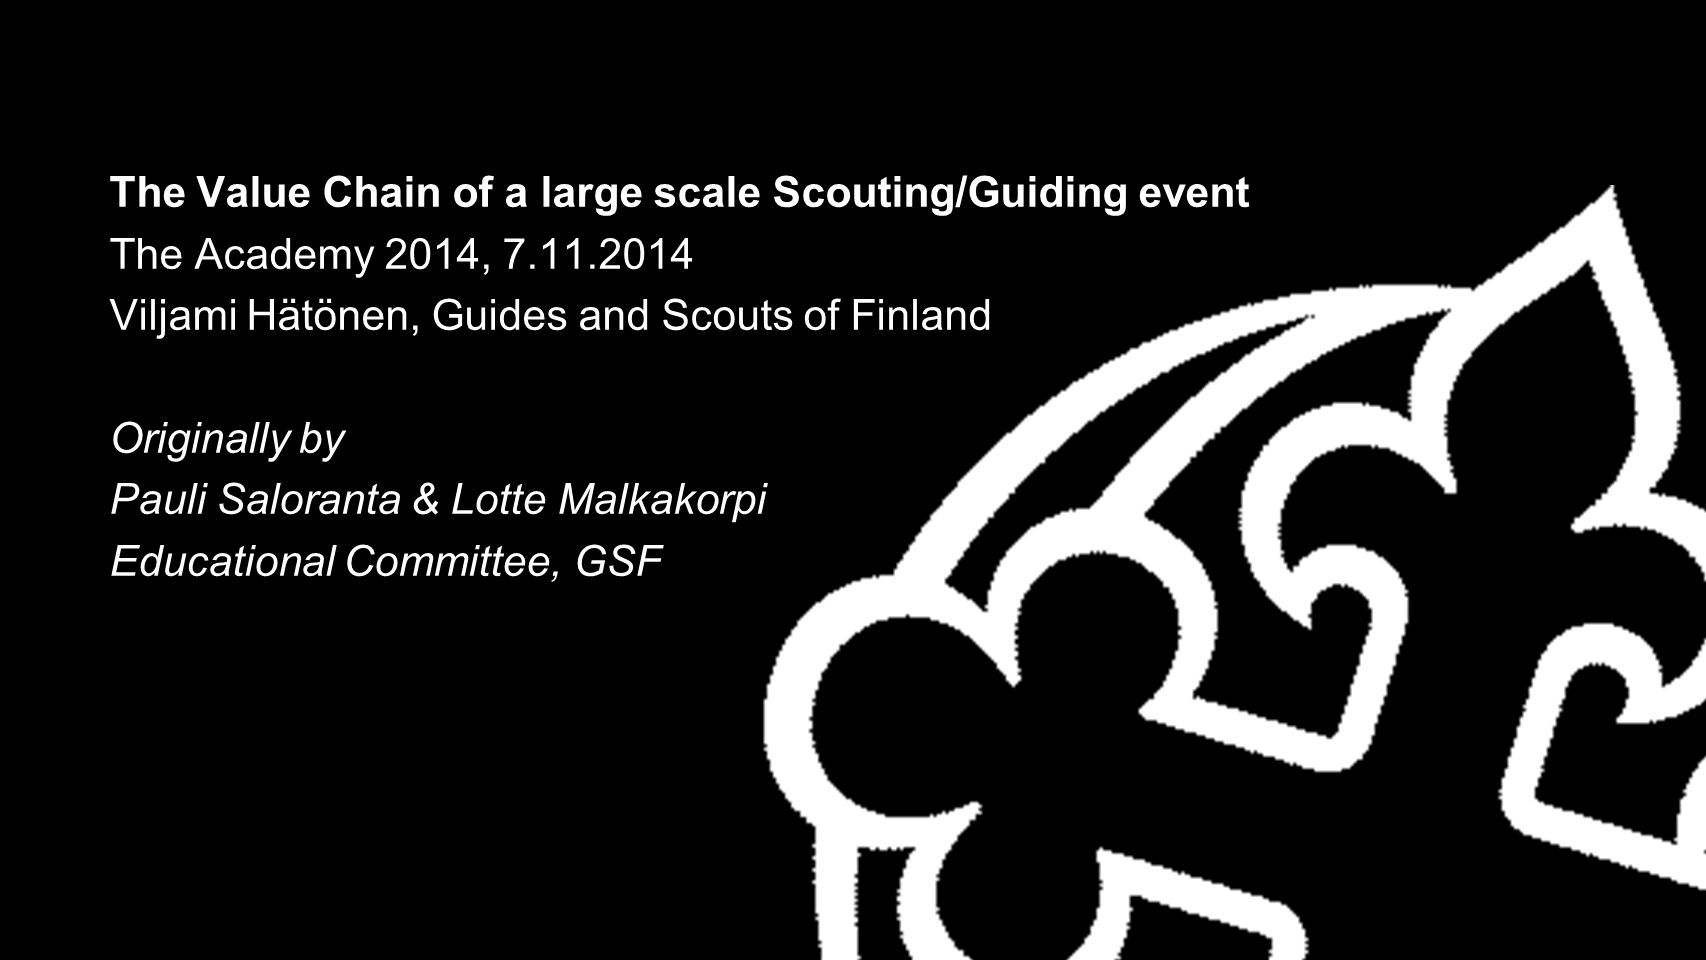 The Value Chain of a large scale Scouting/Guiding event The Academy 2014, 7.11.2014 Viljami Hätönen, Guides and Scouts of Finland Originally by Pauli Saloranta & Lotte Malkakorpi Educational Committee, GSF